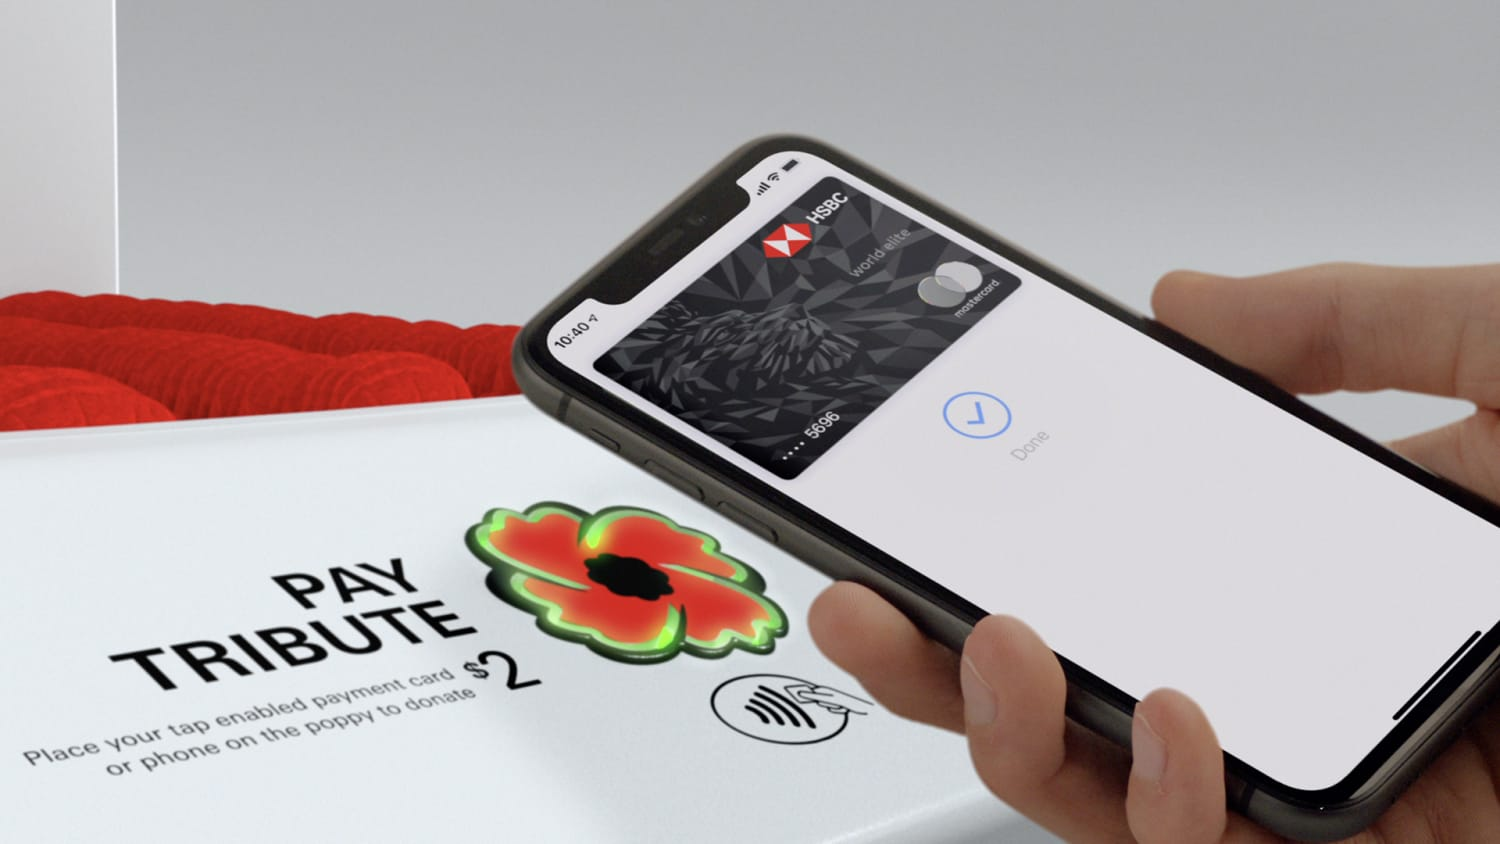 Close up of White background, Pay Tribute box containing poppies. Hand in front holding cellphone with the HSBC RCL Pay Tribute